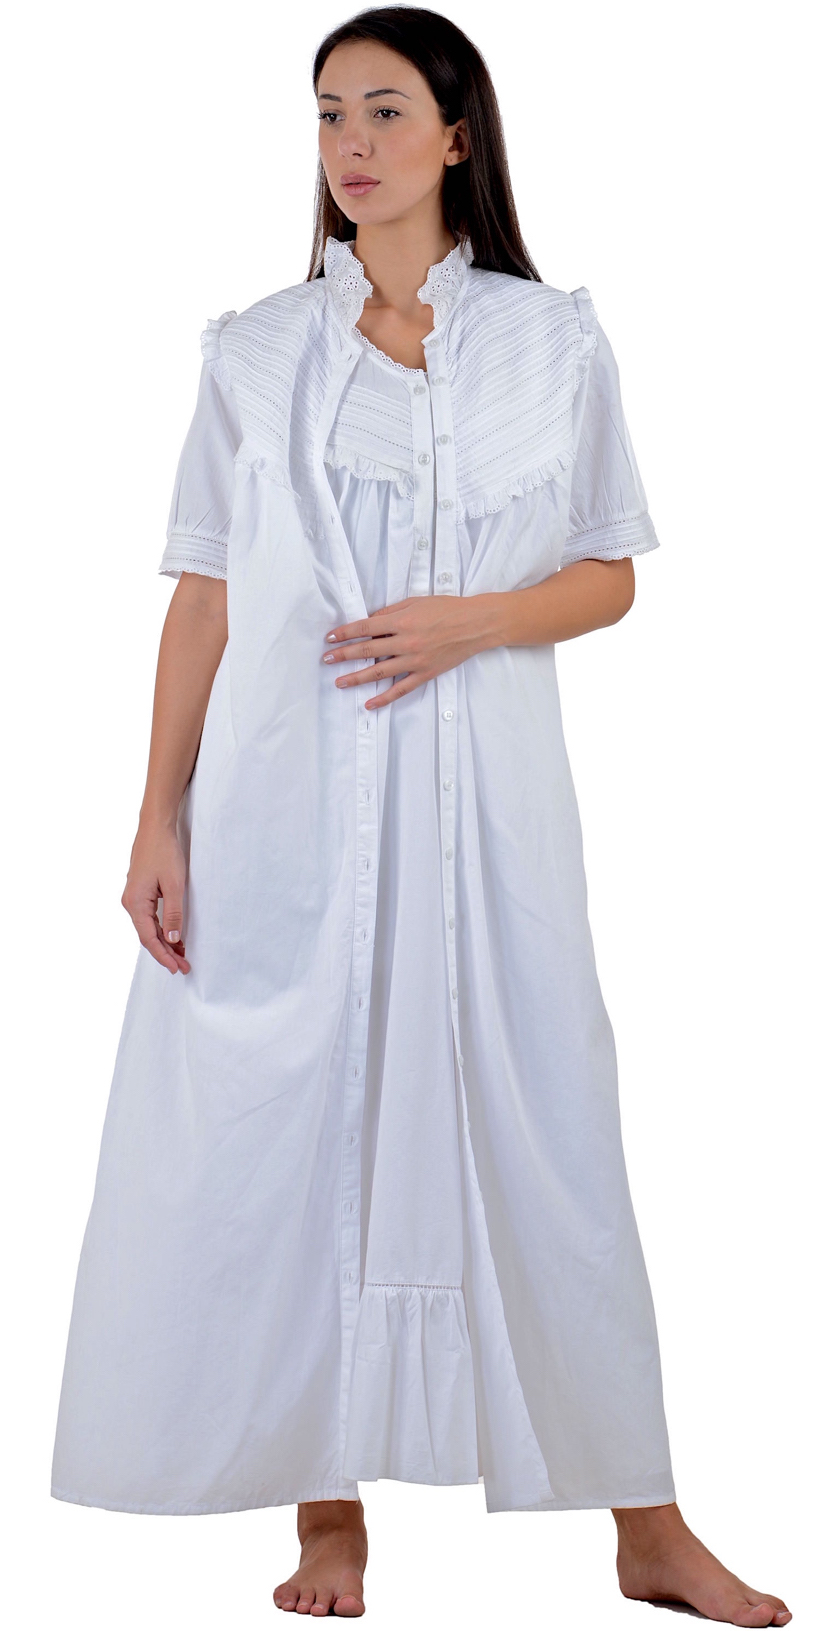 a8e85d7231 White Cotton Nightdress White Cotton Housecoat | Cotton Lane nightdress